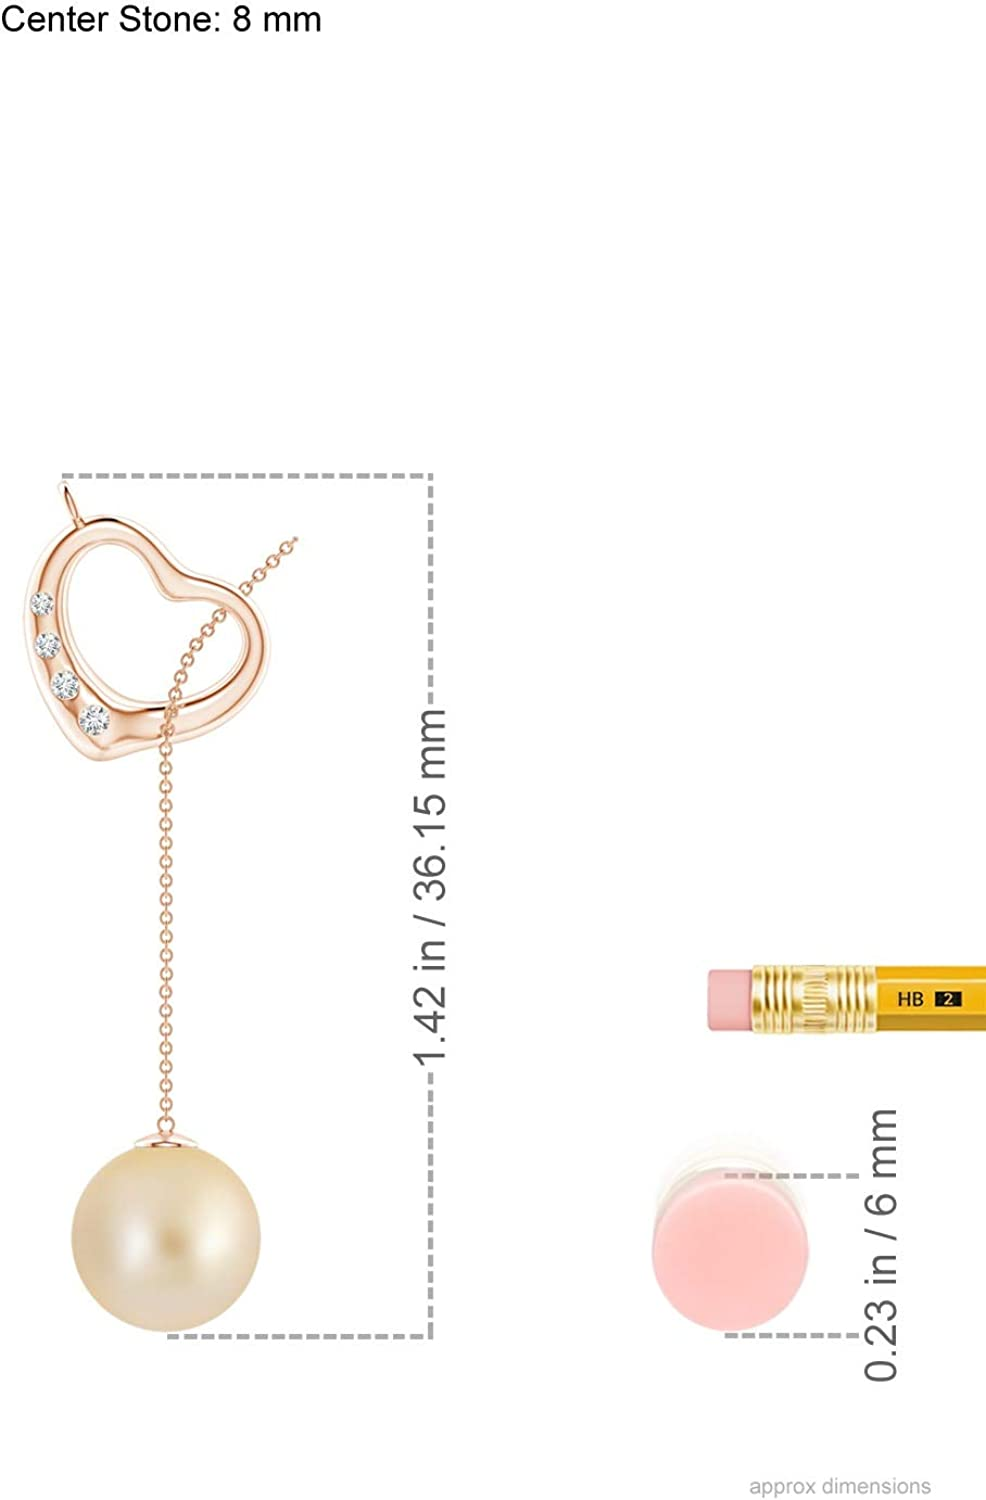 Golden South Sea Cultured Pearl Lariat-Style Heart Necklace (8mm Golden South Sea Cultured Pearl)